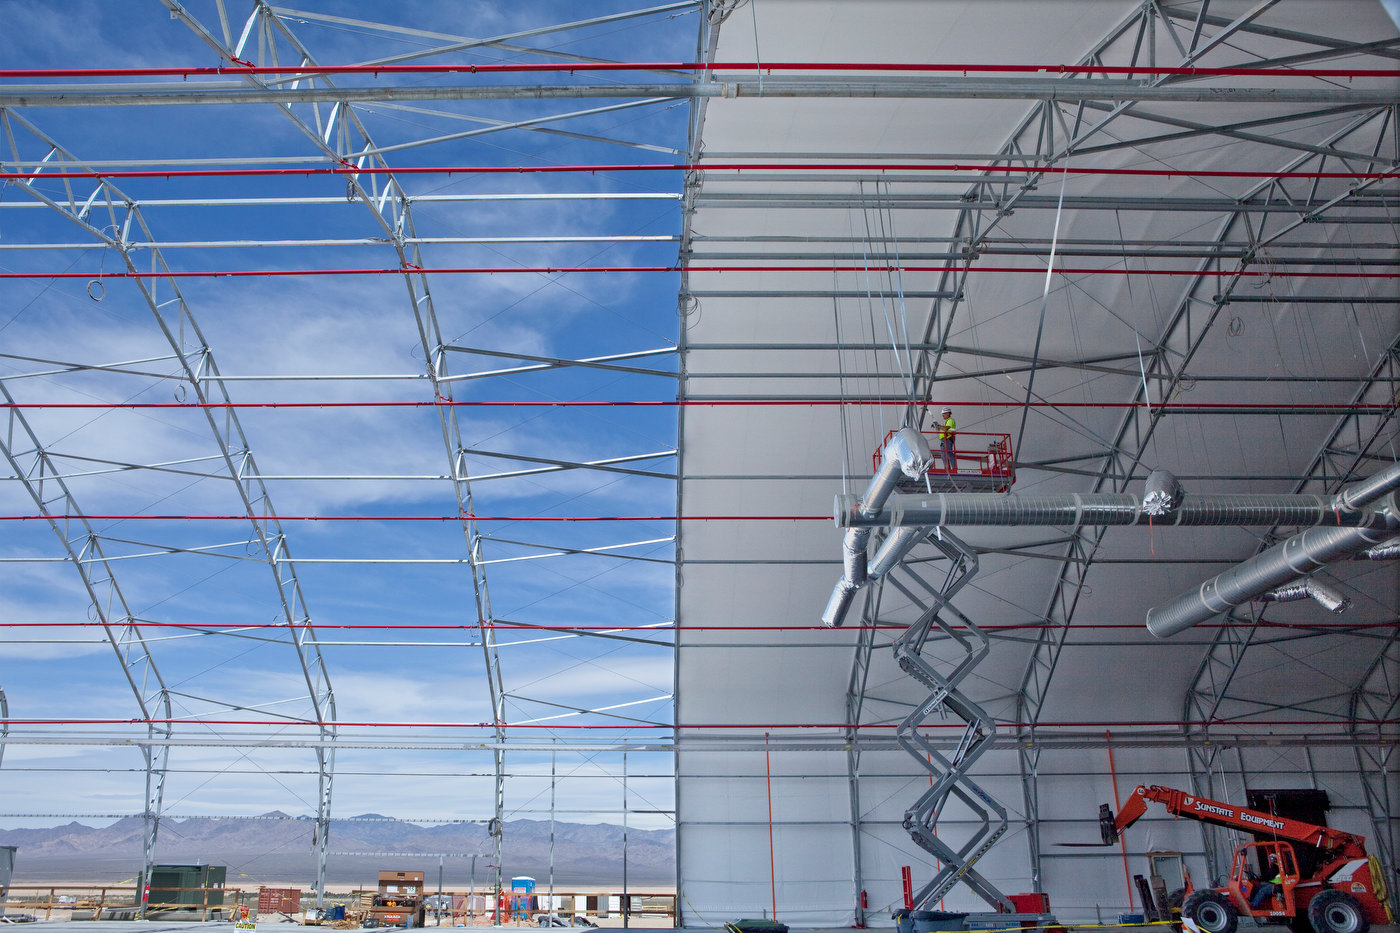 IVANPAH, CALIFORNIA, MAY 16 2011: A worker installs AC conduits in one of the three temporary tents warehouses where the mirrors will be assembled at the Ivanpah Solar Electric Generating Facility (photo Gilles Mingasson/Getty Images for Bechtel).